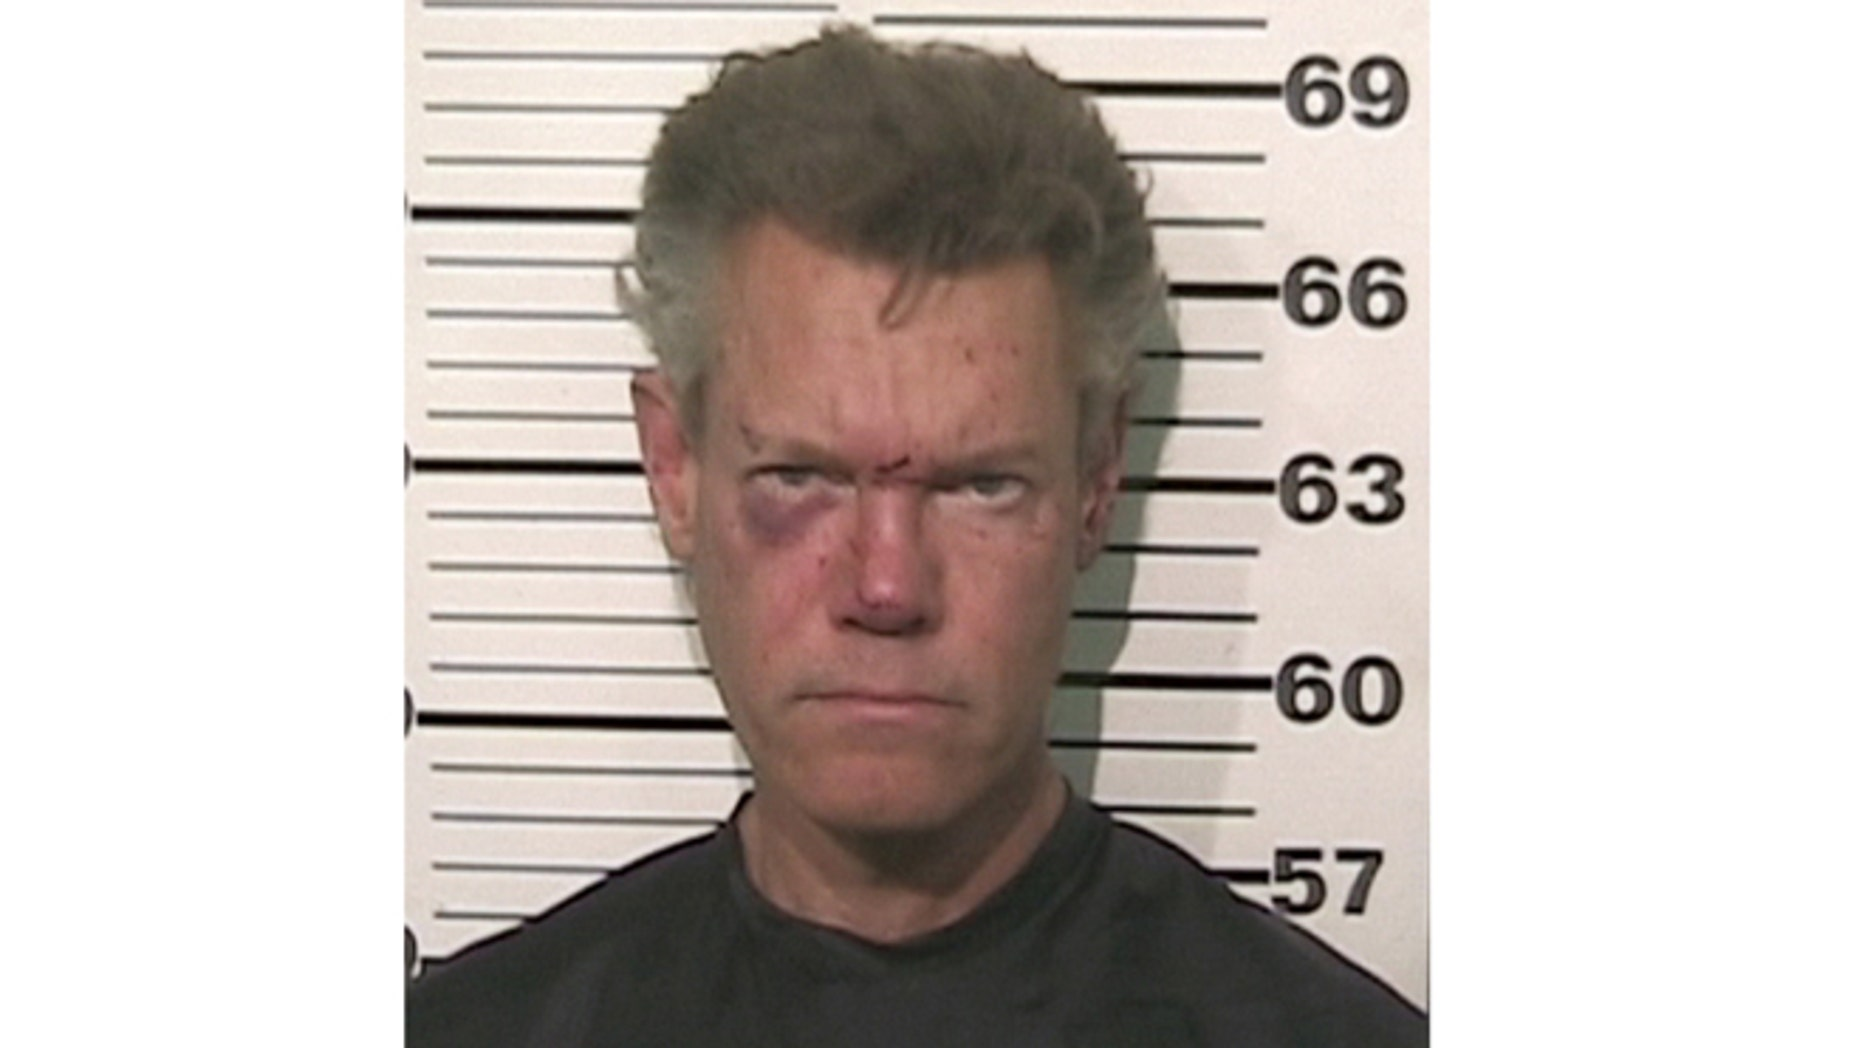 This file photo provided by the Grayson County, Texas, Sheriffs Office shows Country singer Randy Travis.